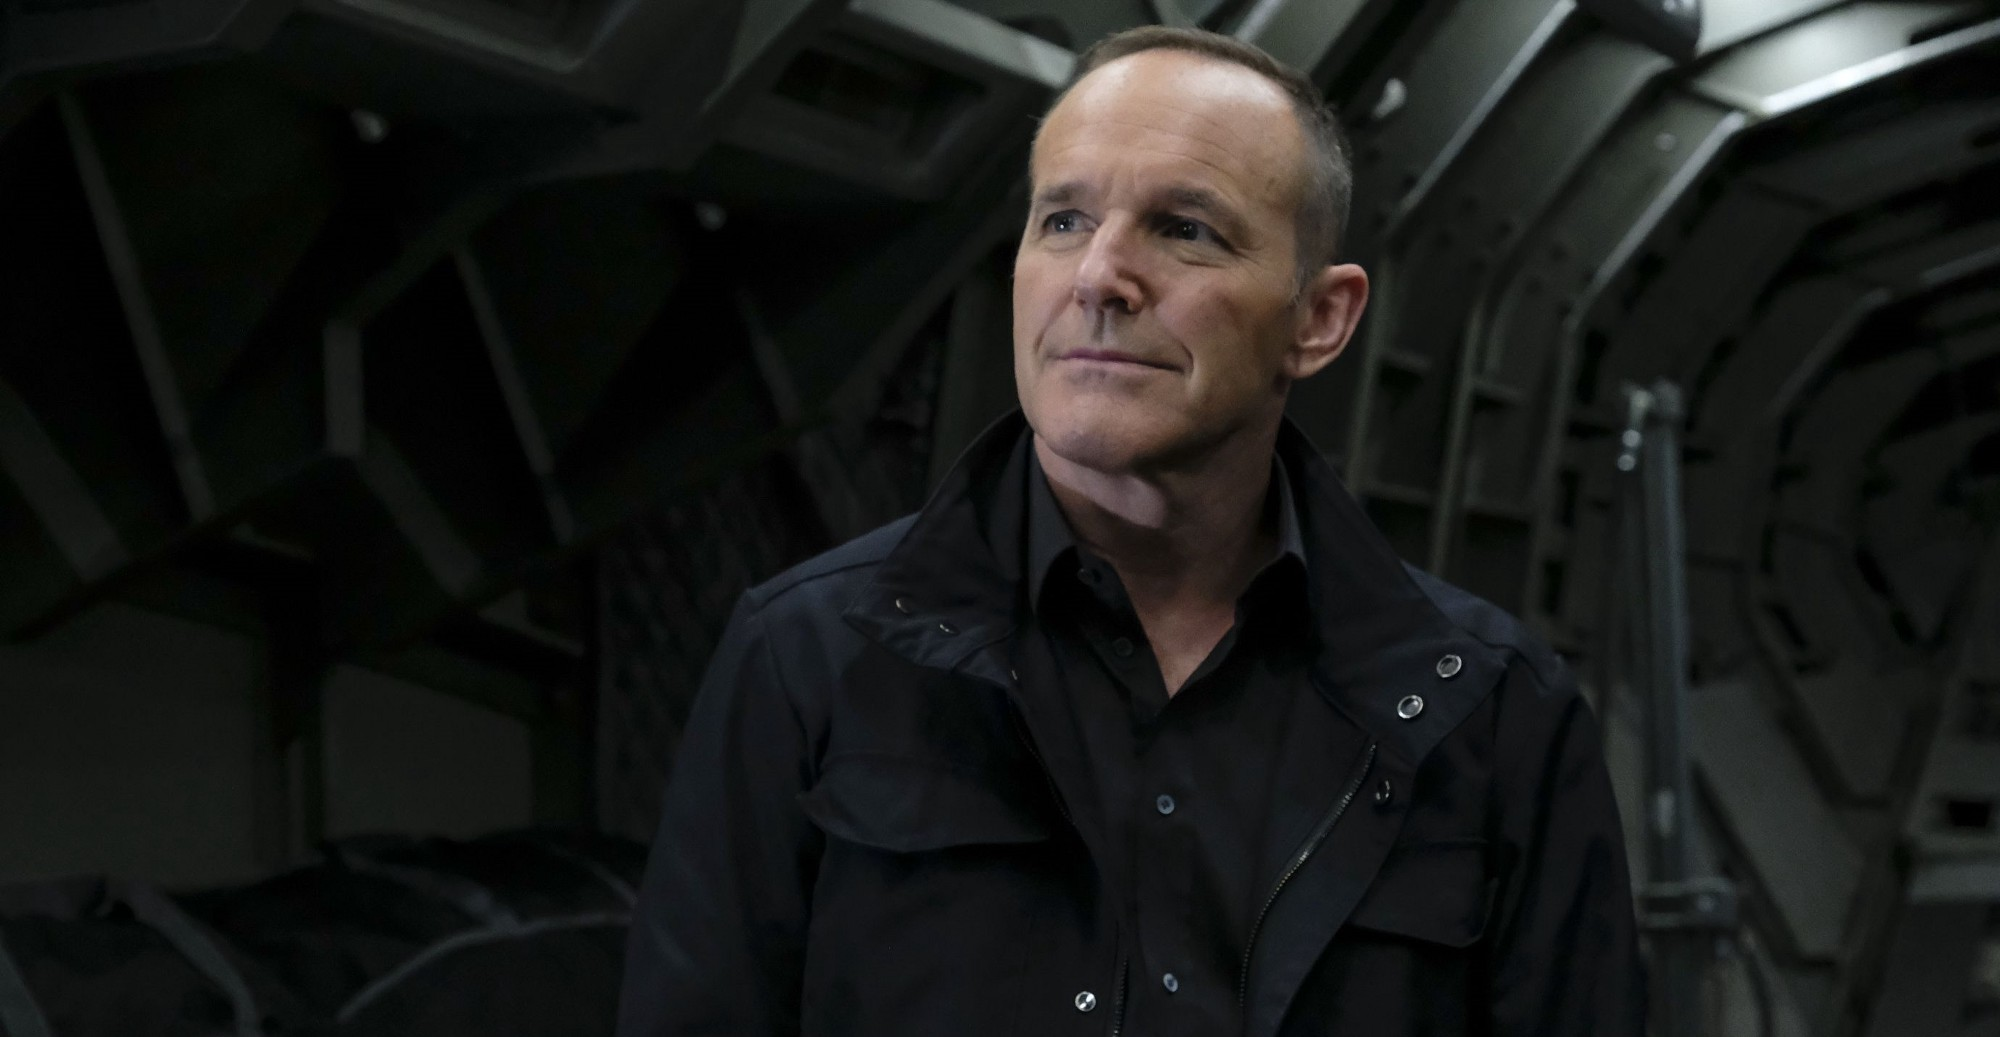 Clark Gregg as Phil Coulson in Marvel's Agents of S.H.I.E.L.D.